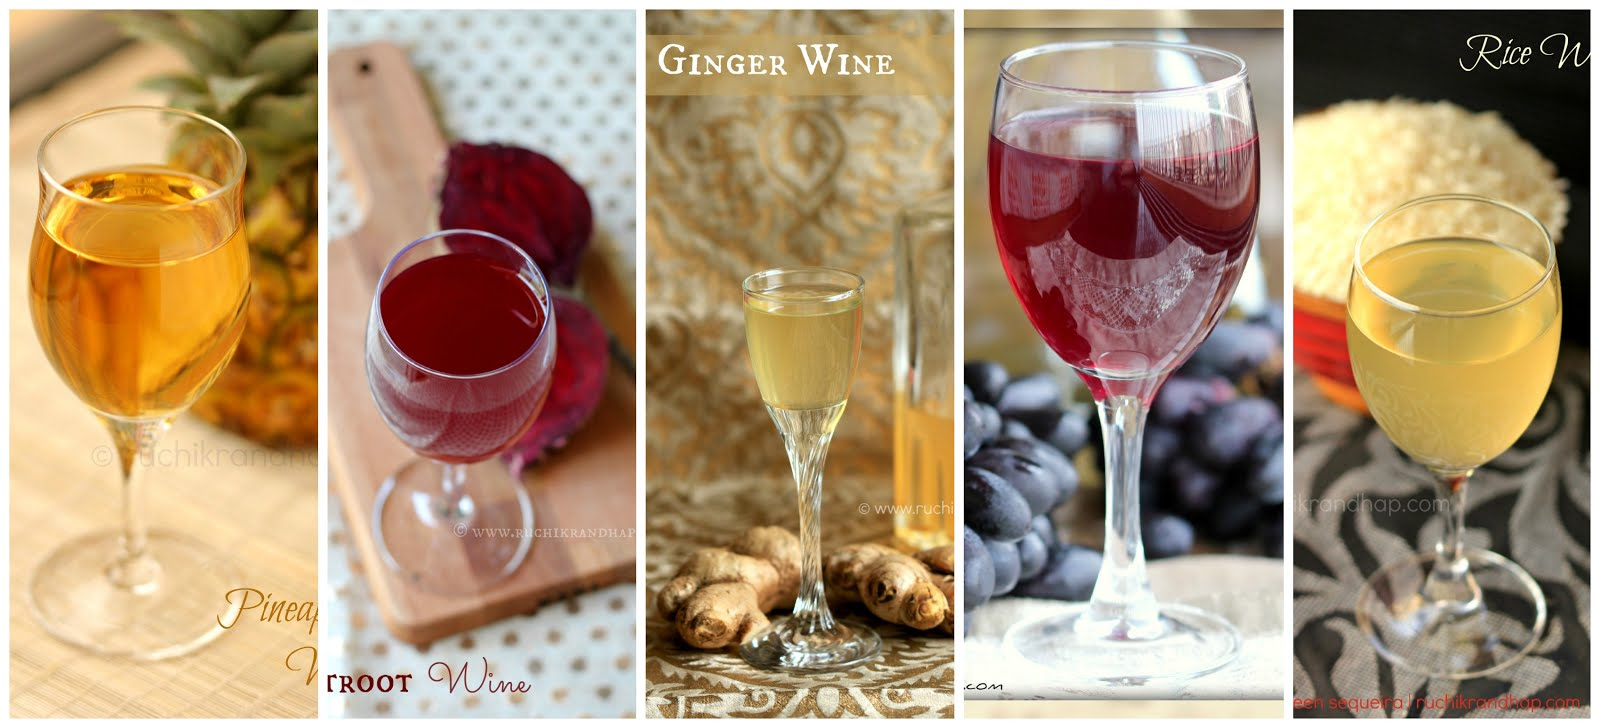 HOMEMADE WINES